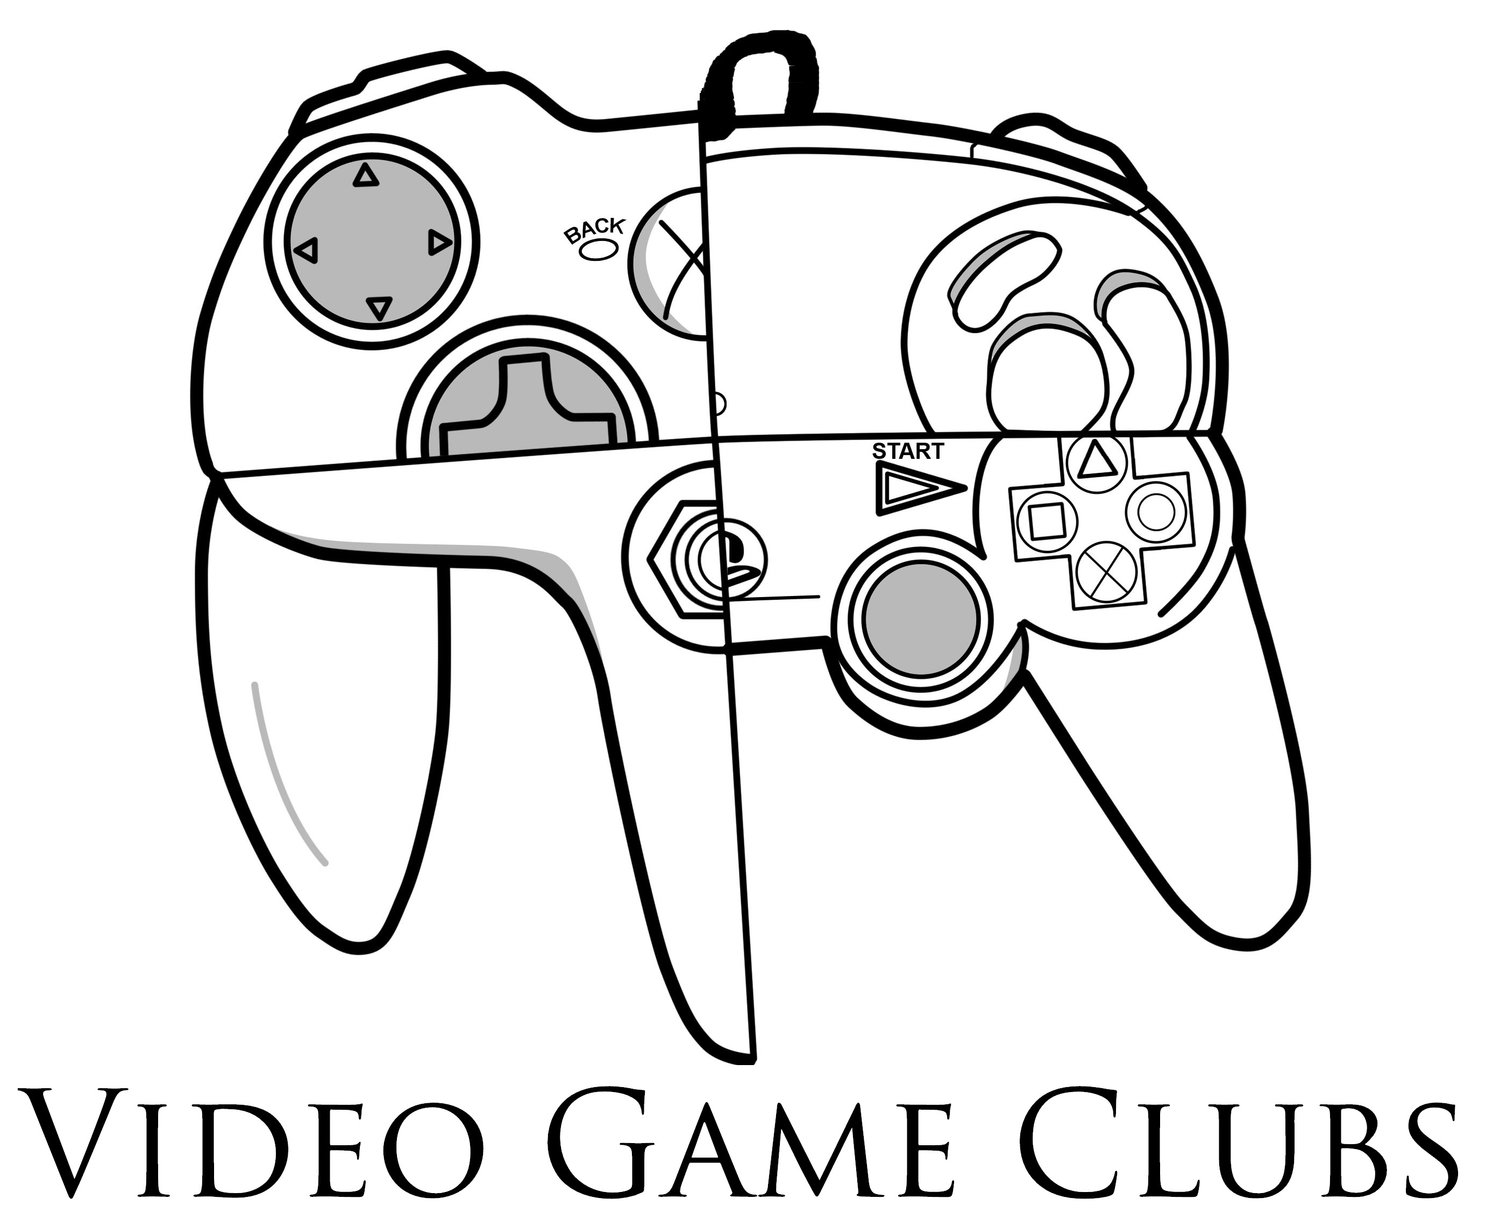 Video Game Clubs